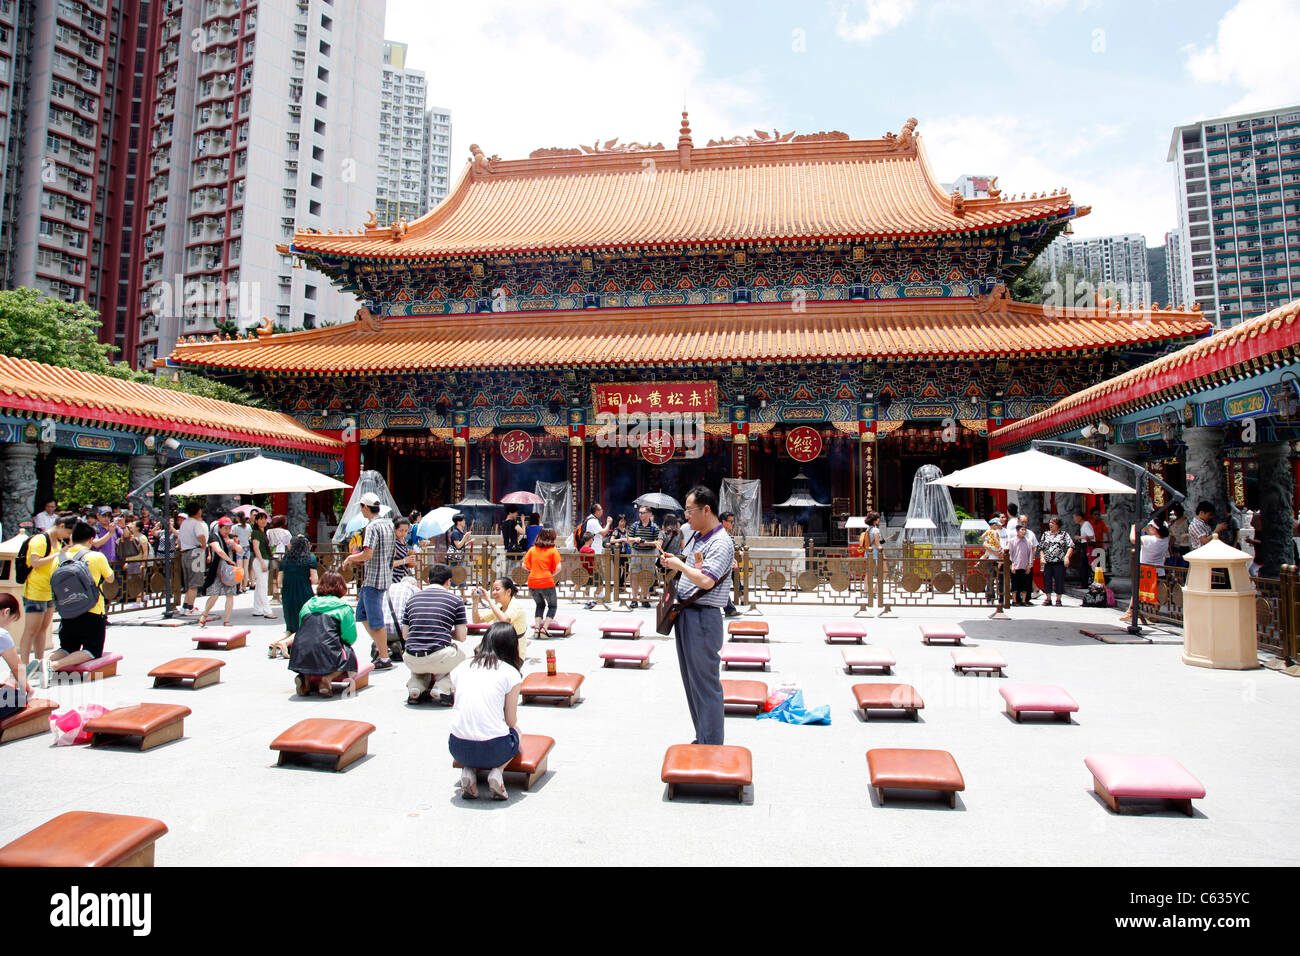 Sik Sik Yuen Wong Tai Sin Temple bouddhiste à Hong Kong, Chine Photo Stock